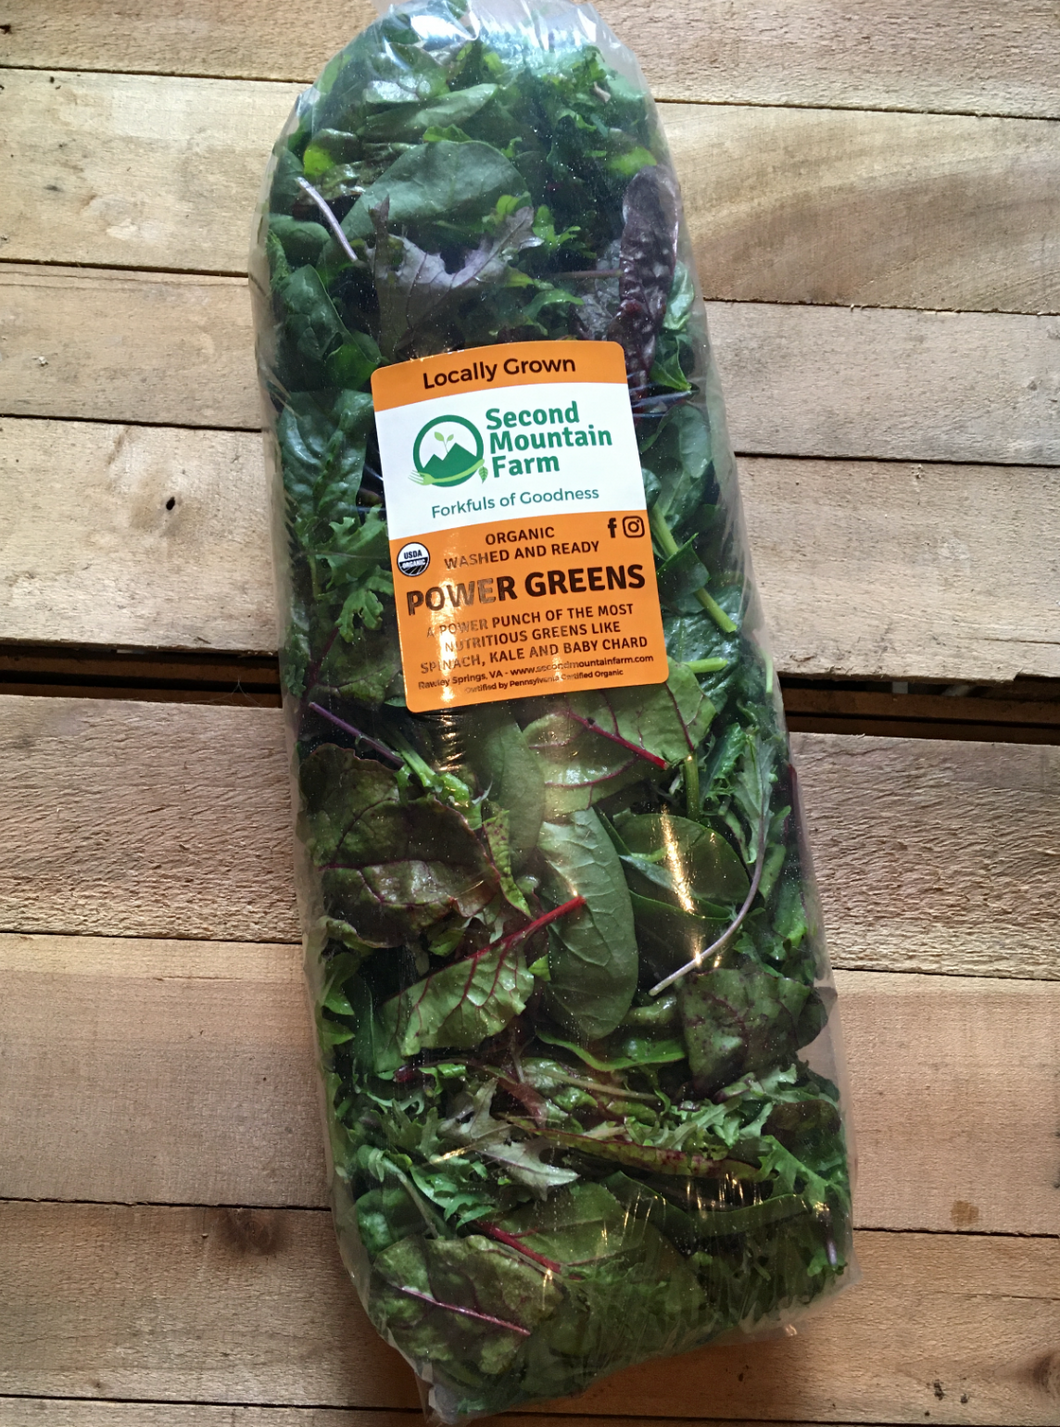 Pound of Power Greens - Wednesday 10/21